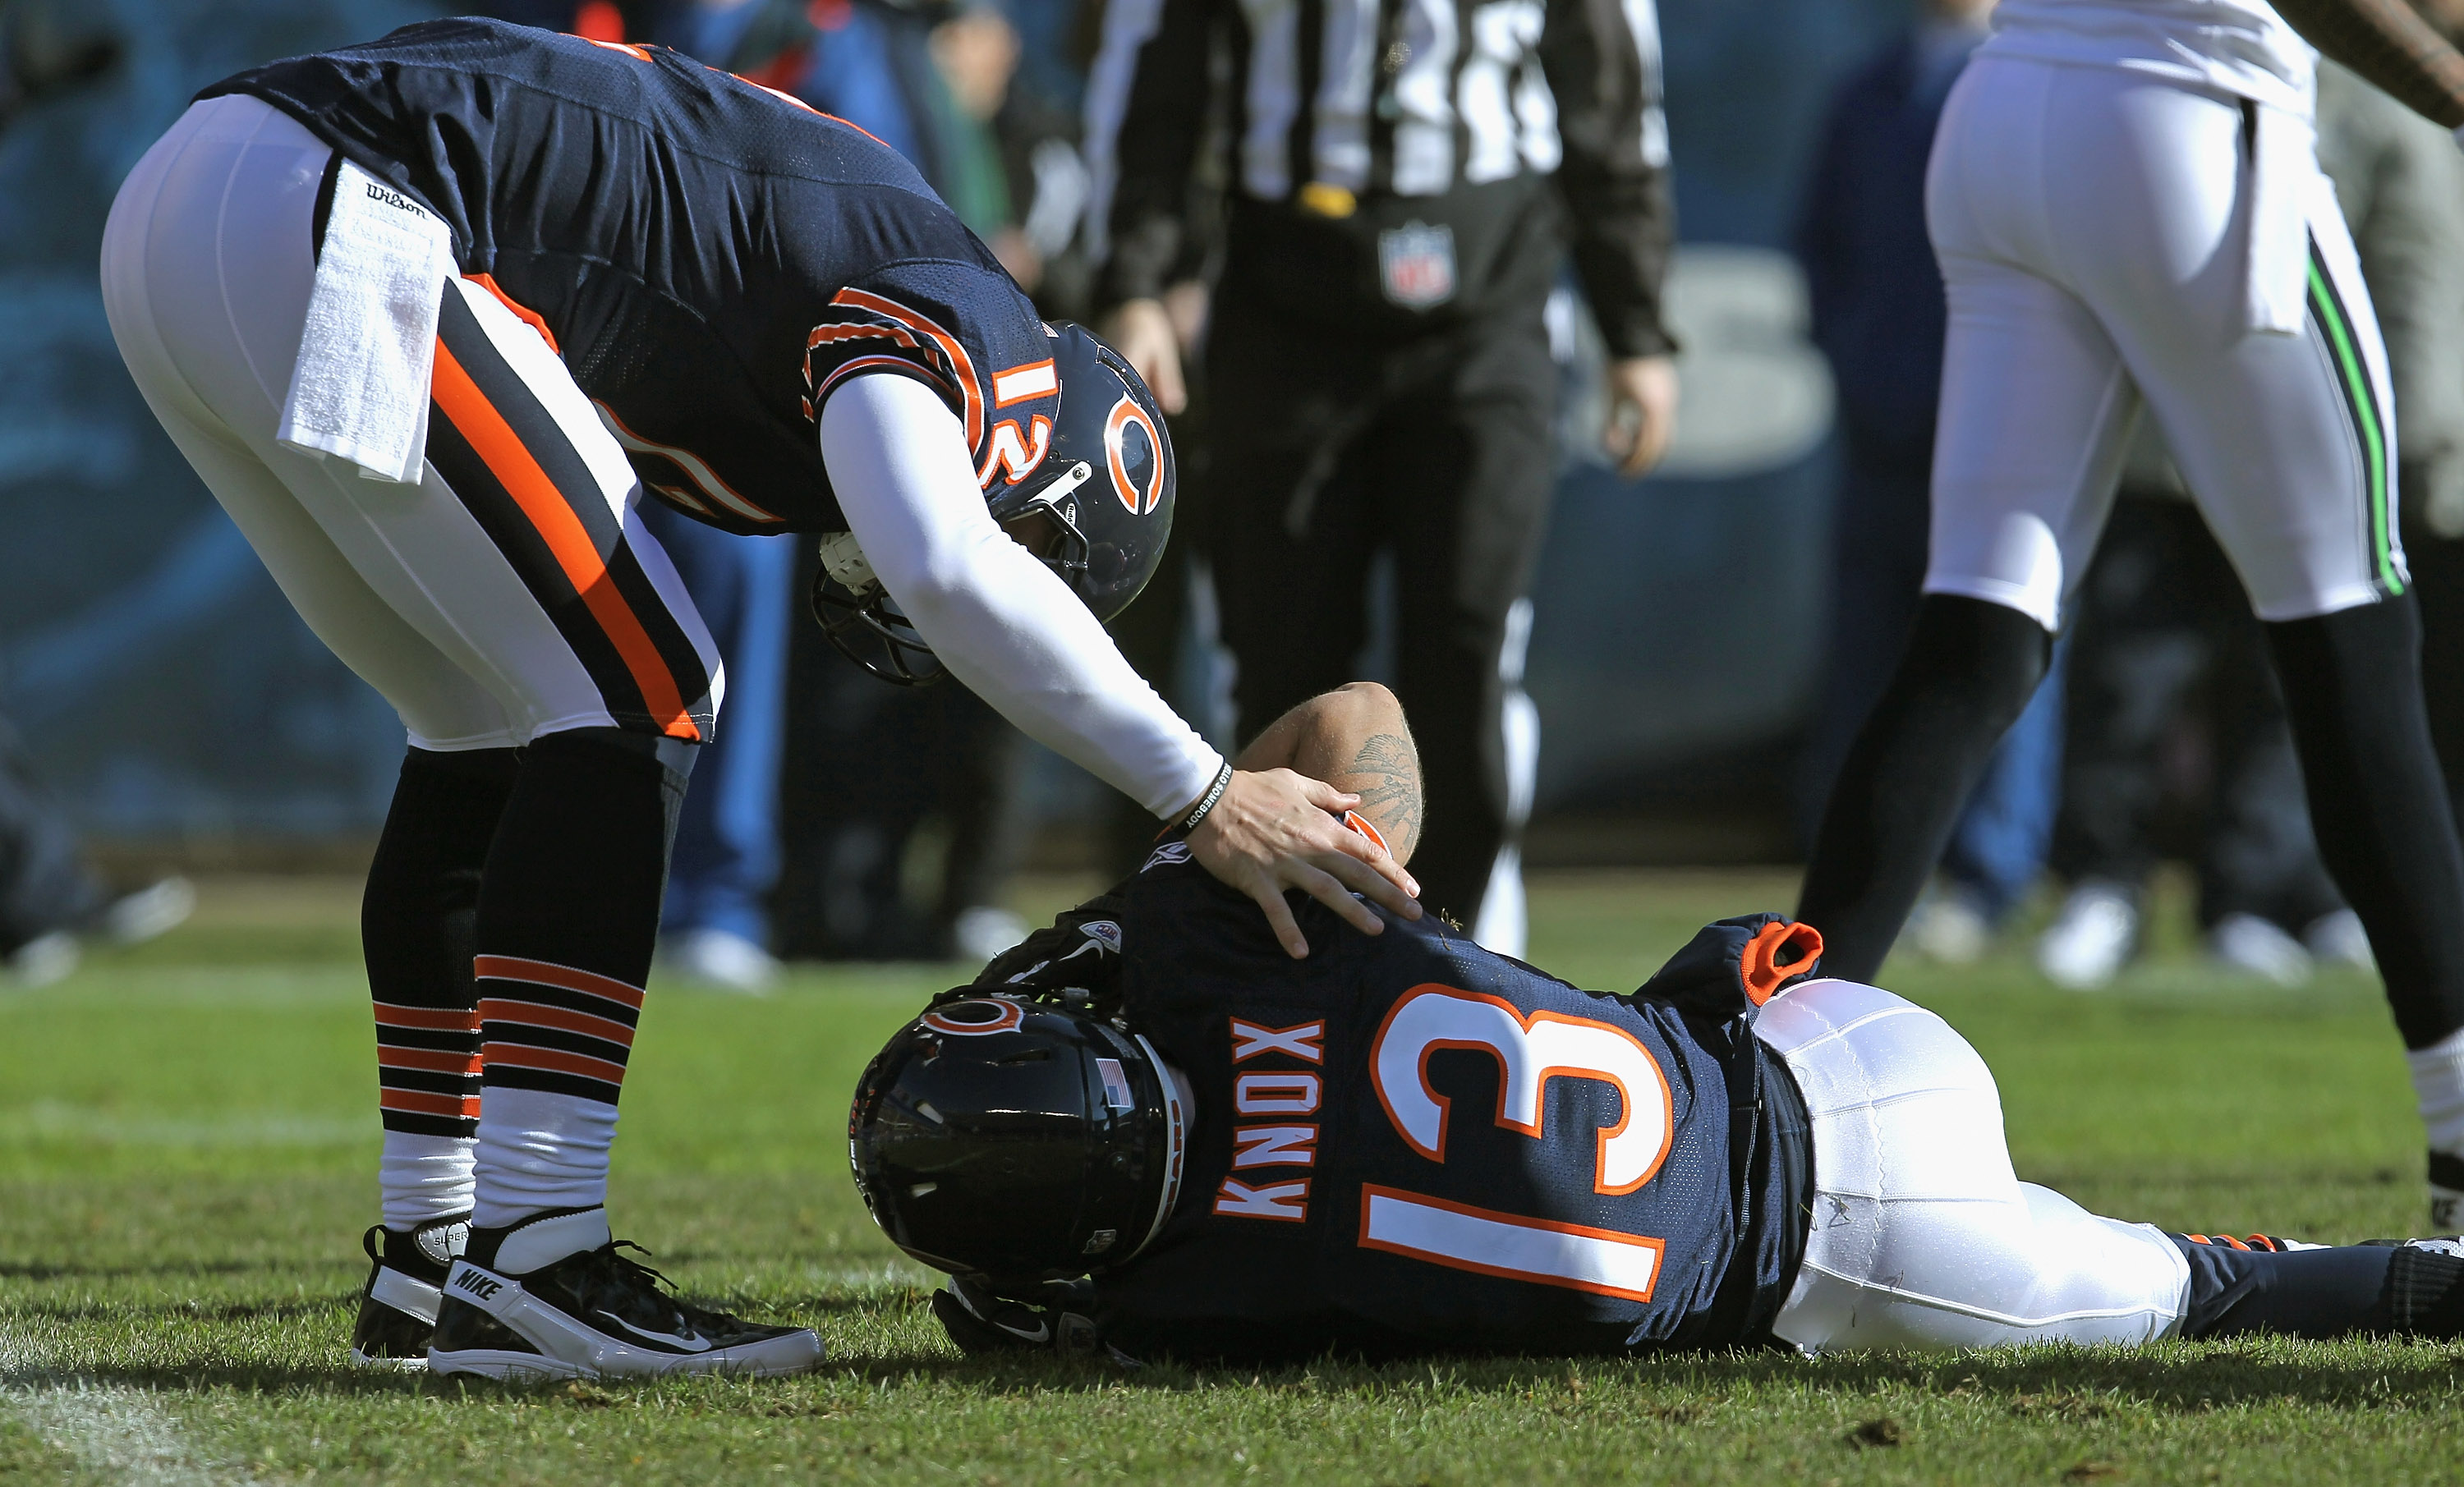 Bears player Johnny Knox lays on the field injured